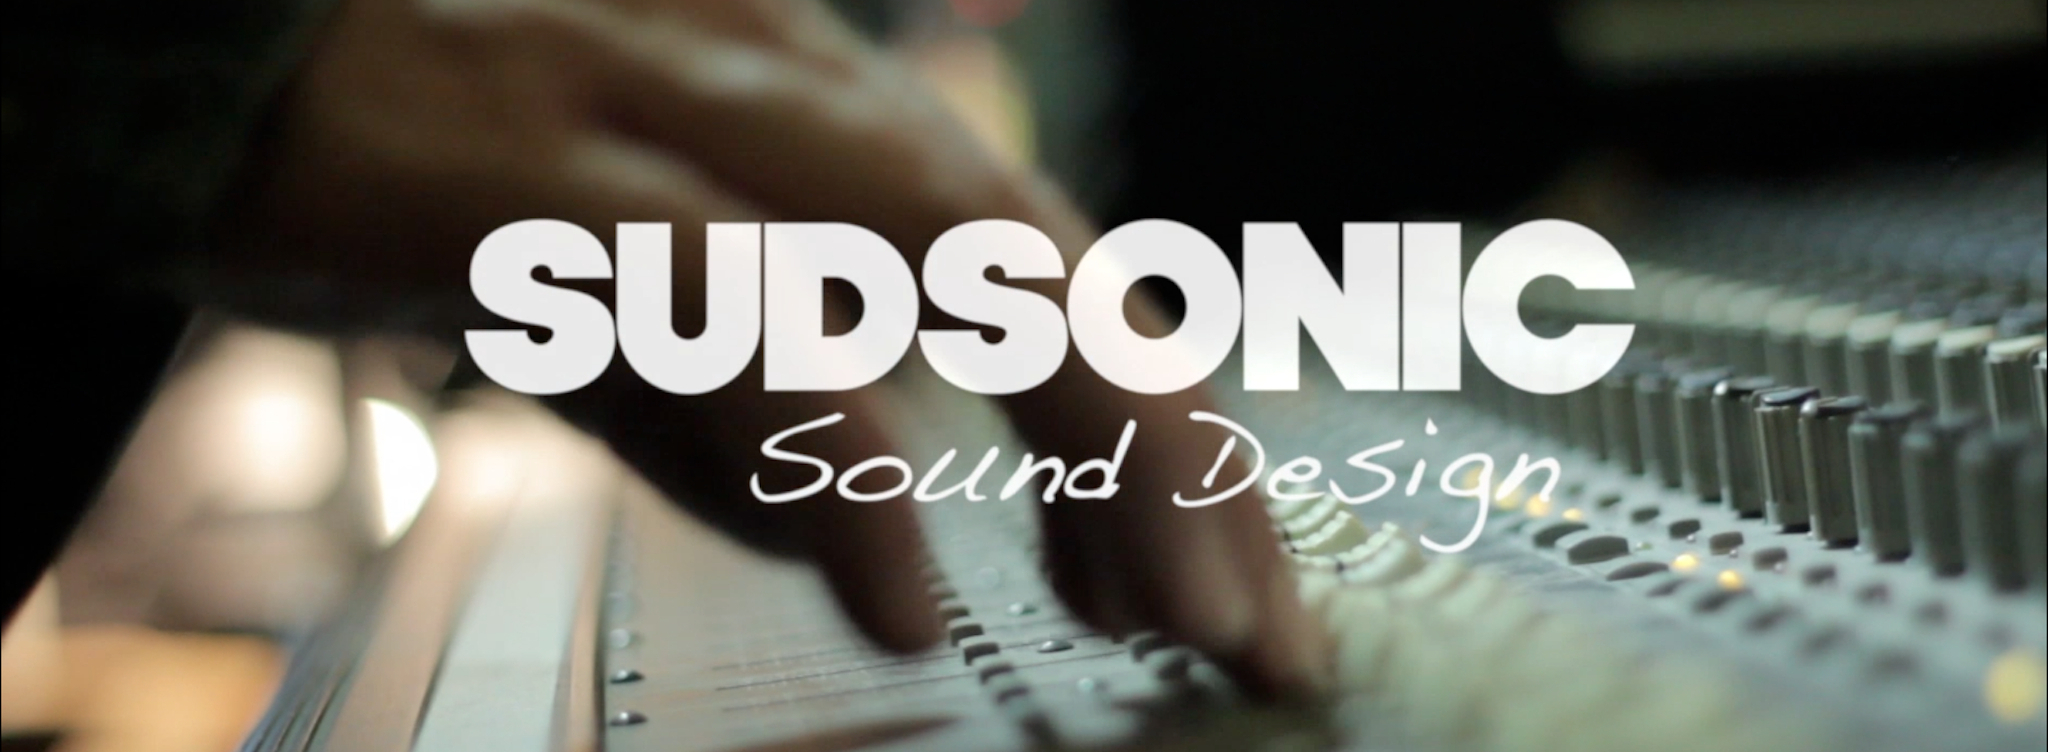 Sudsonic_sound_design